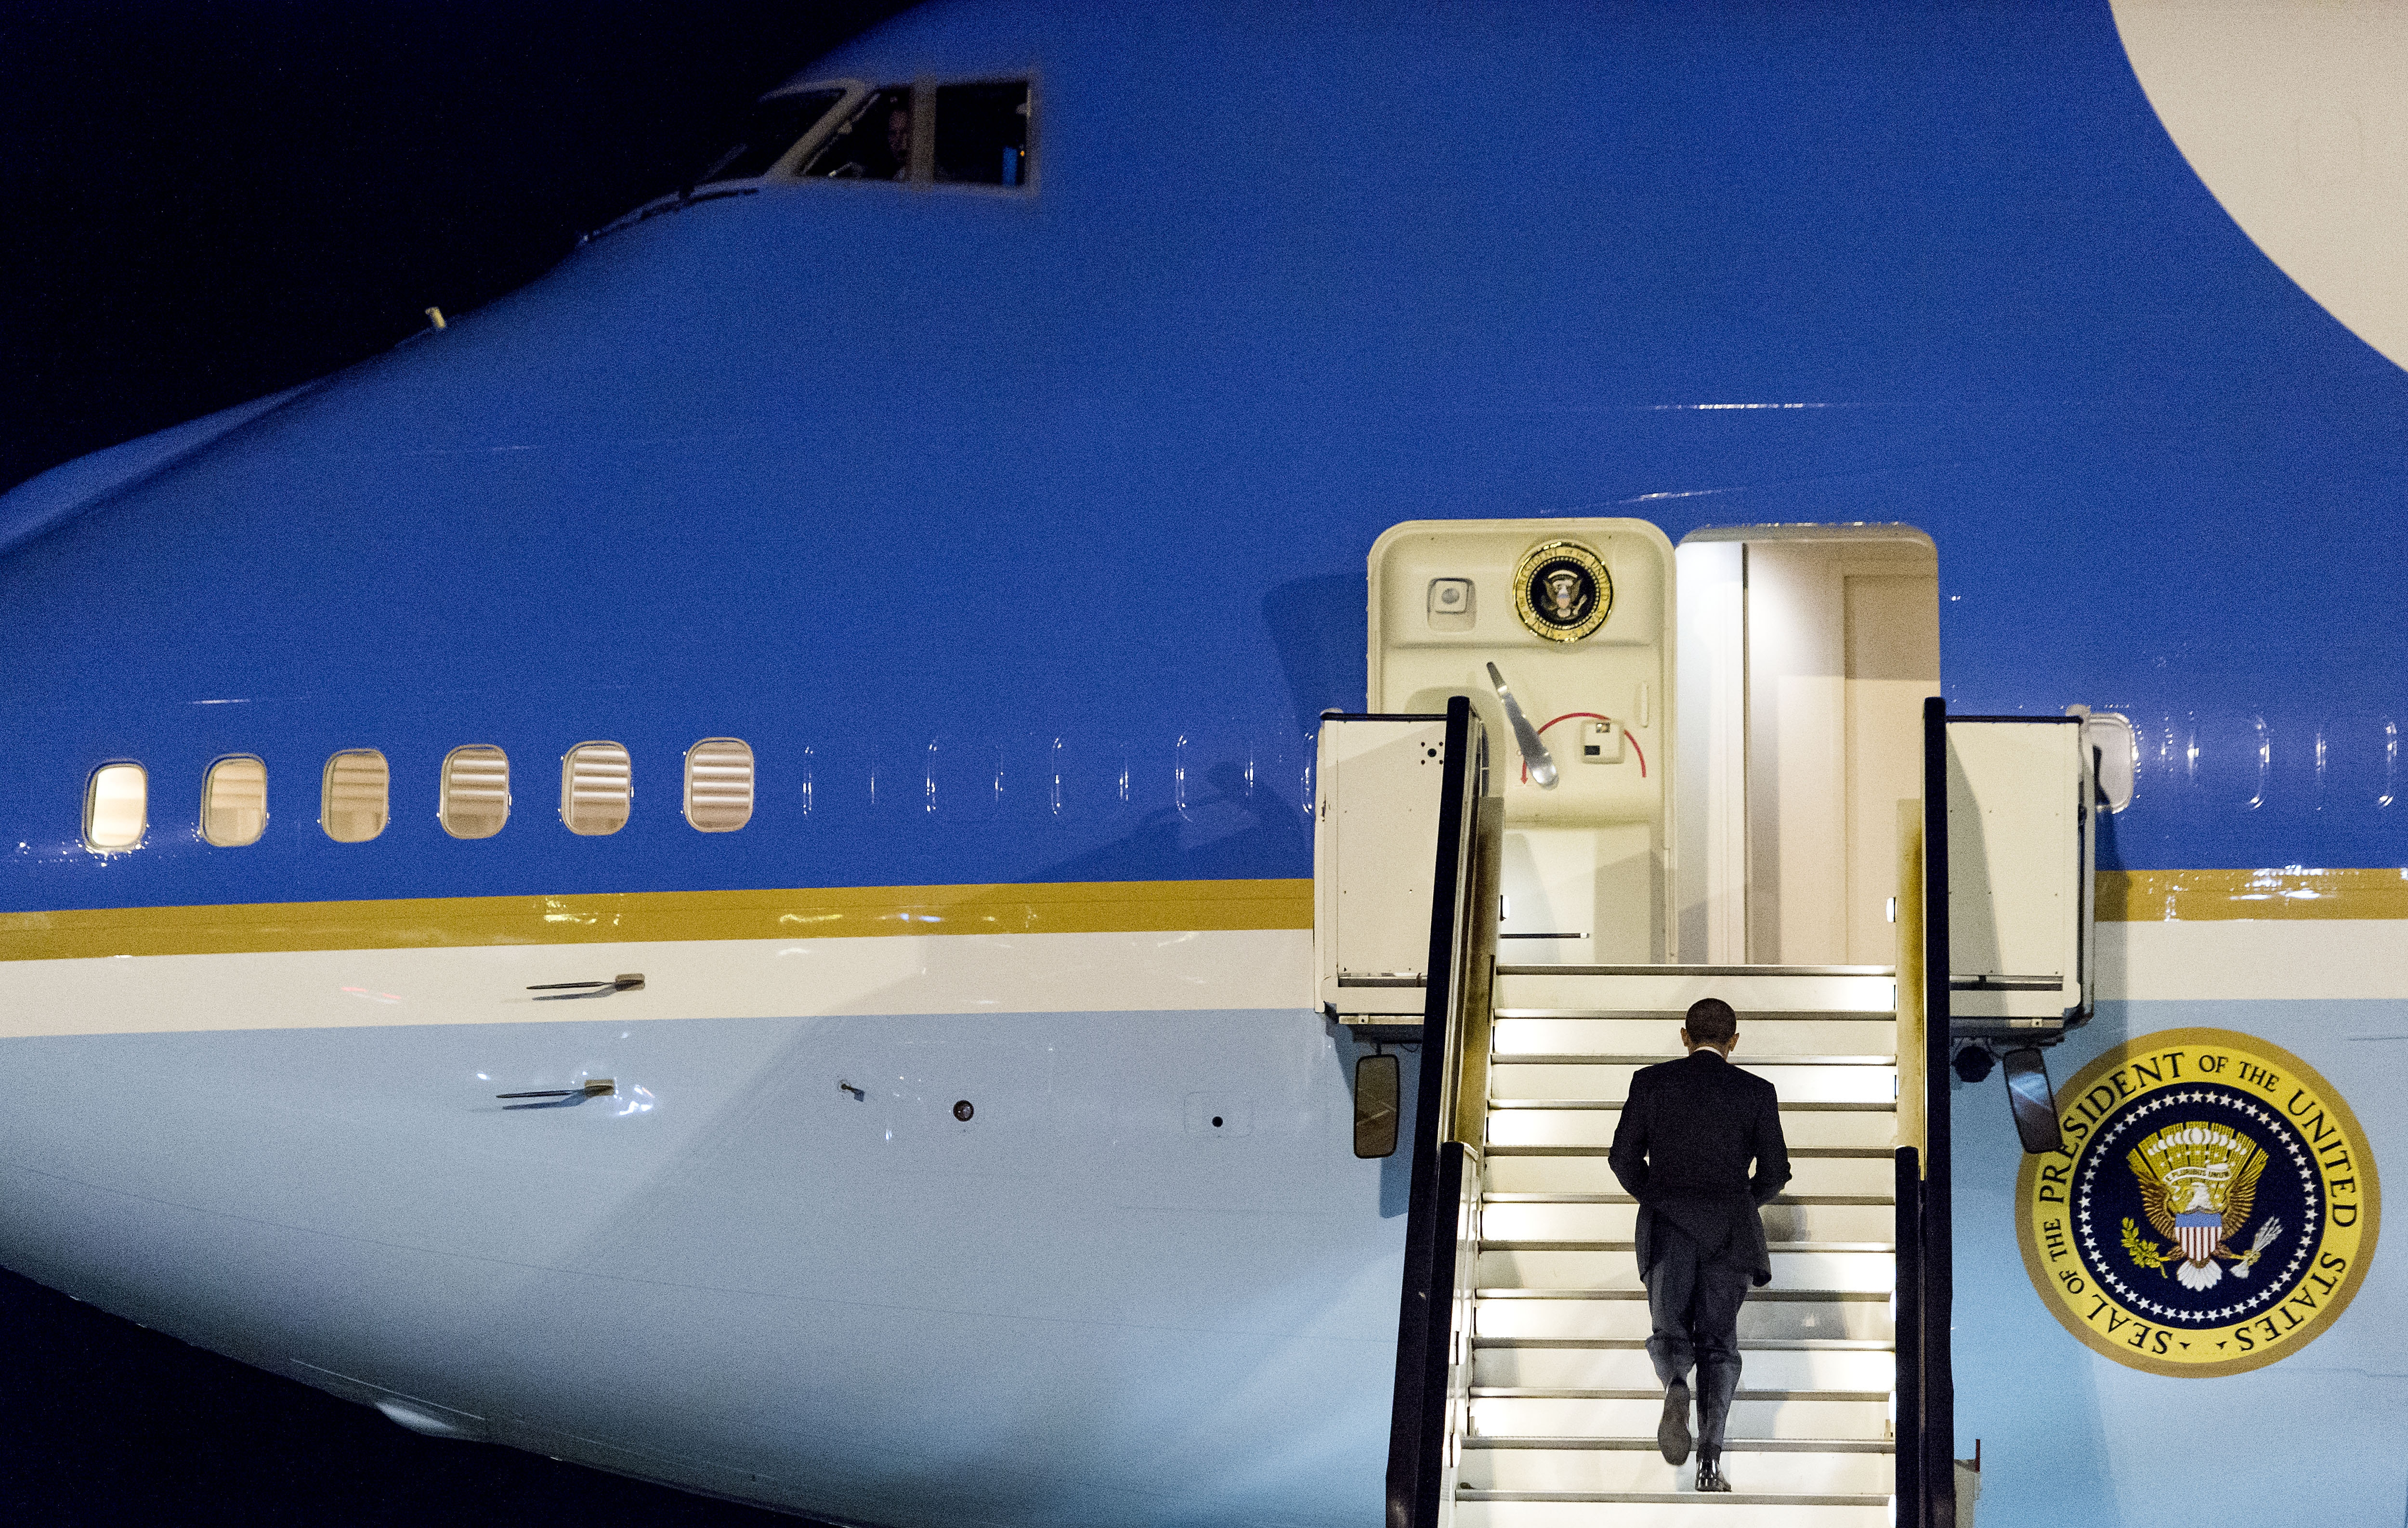 President Obama walks up the stairs of Air Force One before leaving Amsterdam Airport Schiphol on Tuesday. Obama attended a two-day nuclear security summit with more than 50 world leaders in The Hague, Netherlands.